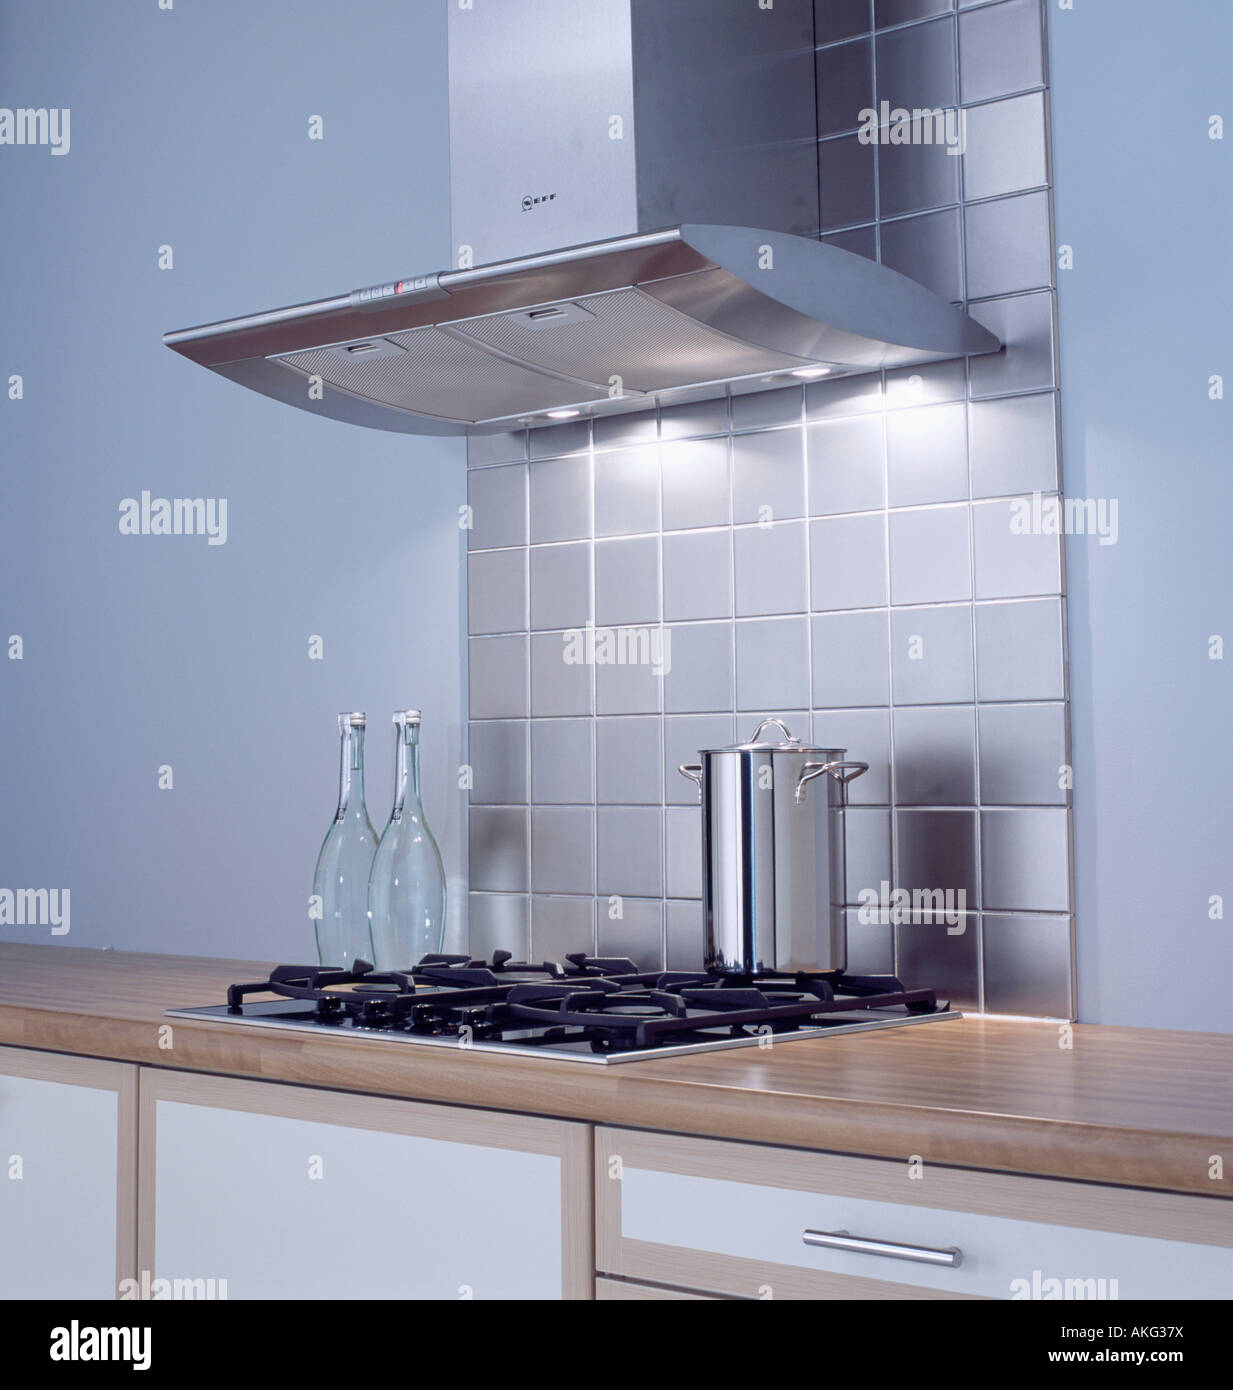 Merveilleux Stainless Steel Tiles Below Extractor Fan Above Hob In Modern Kitchen